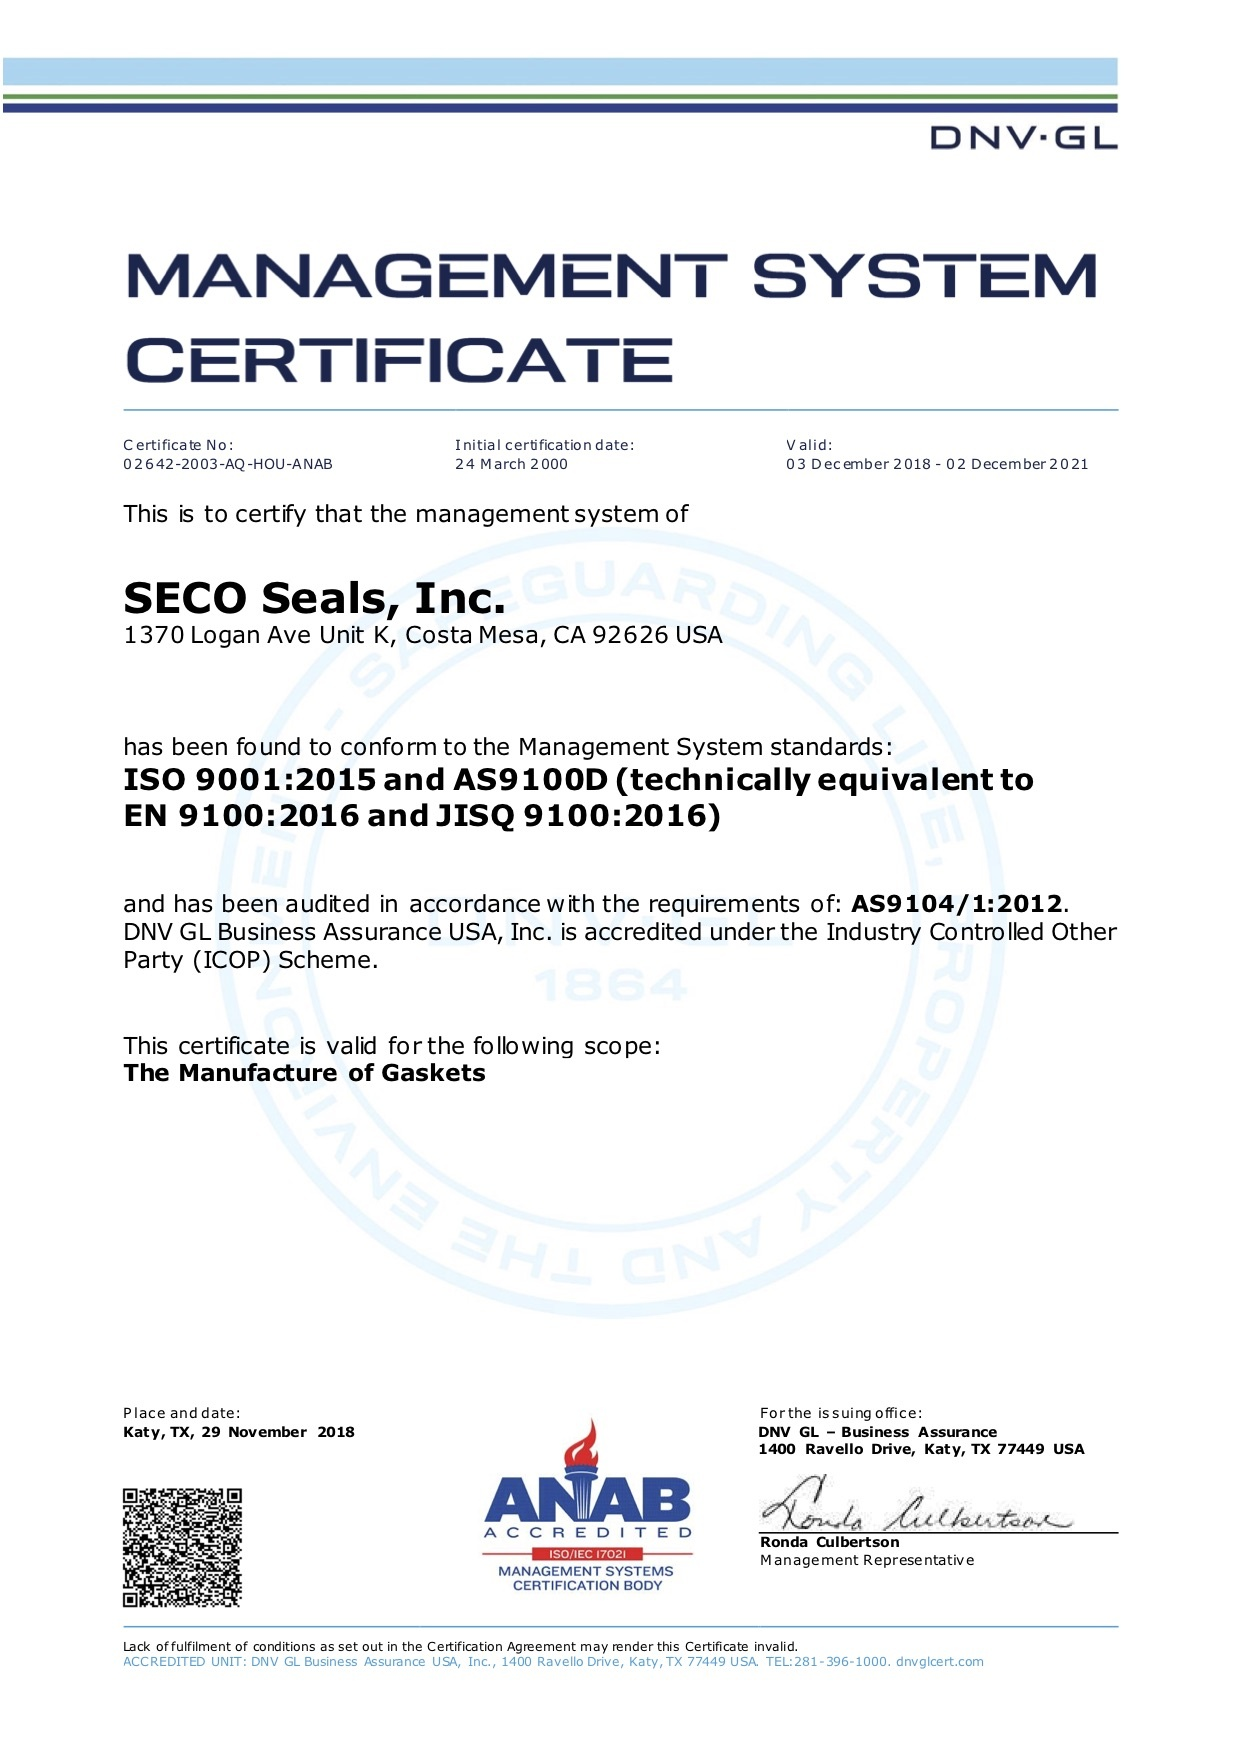 ISO 9001:2015 and AS9100D Certificate (technically equivalent to EN 9100:2016 and JISQ 9100:2016)